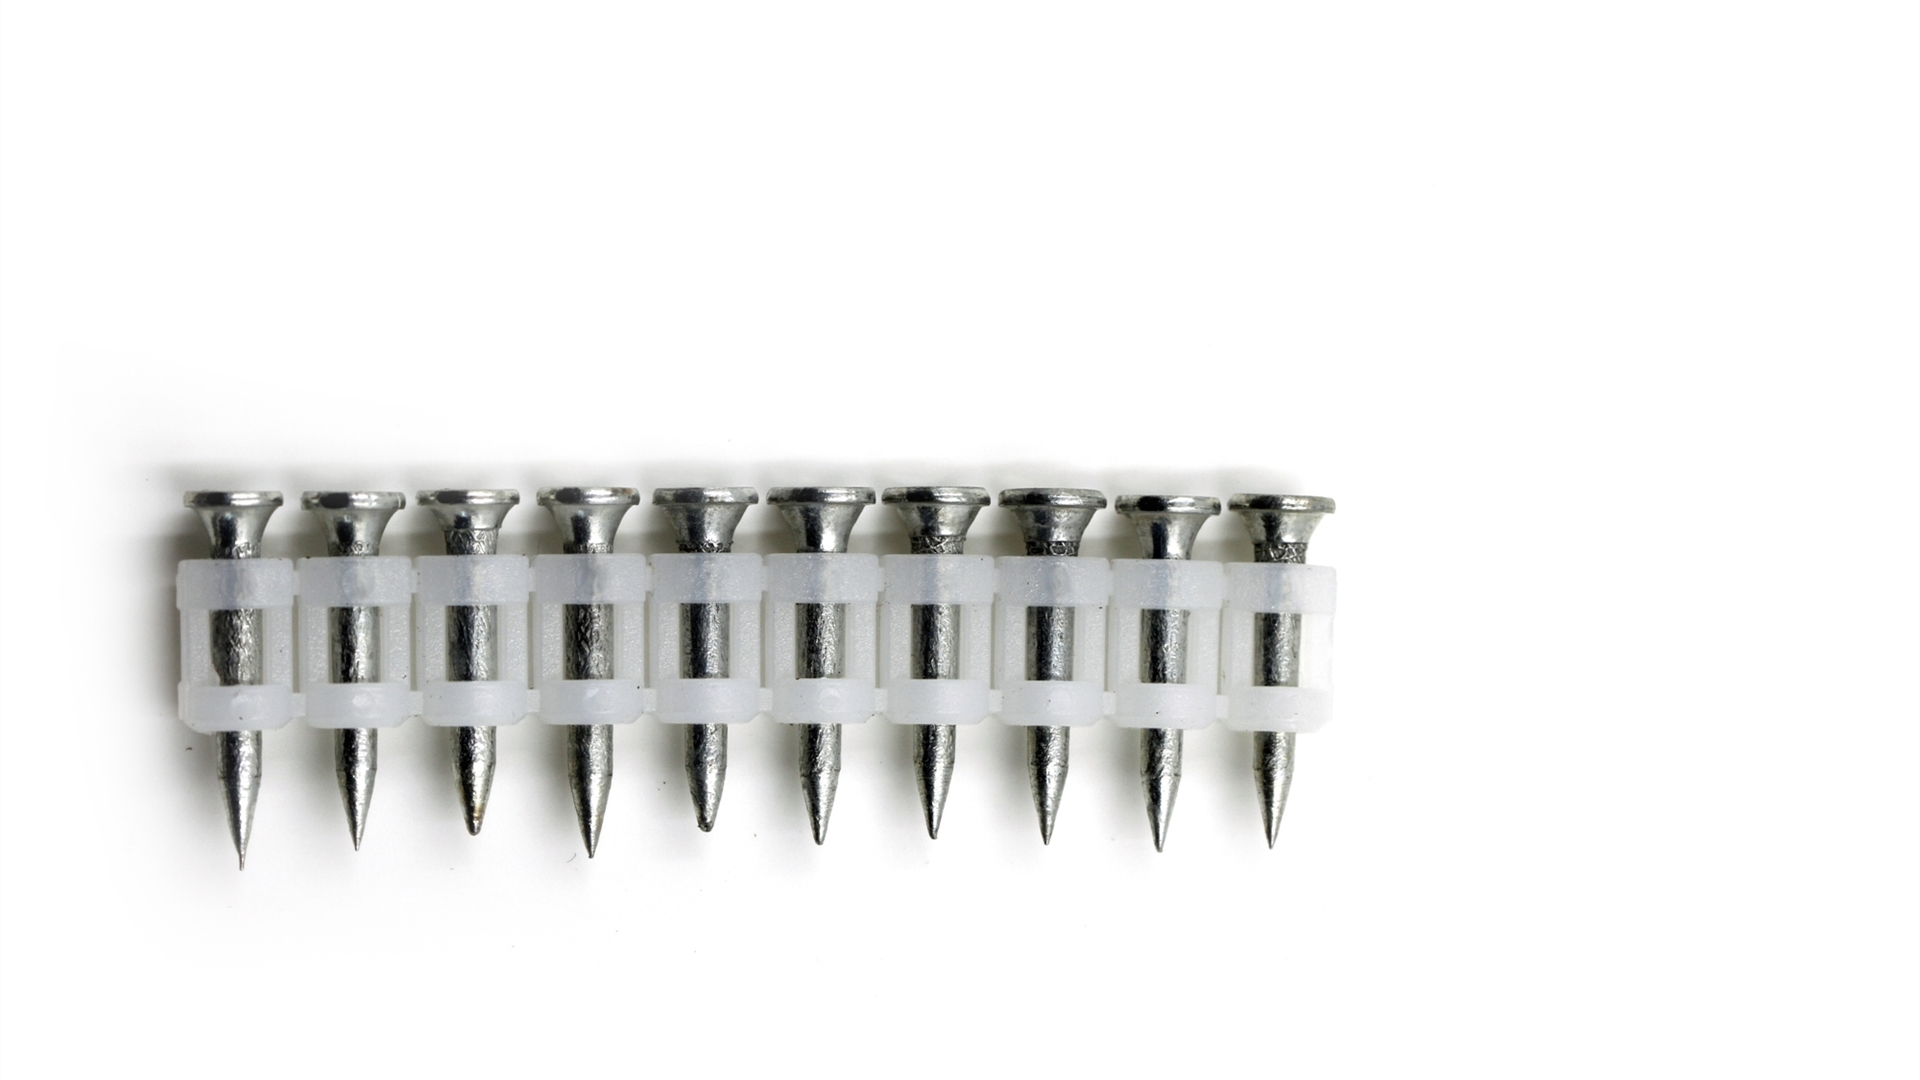 Fluted Gas Drive Pin Concrete Nails DN Type Galvanized Steel Nail